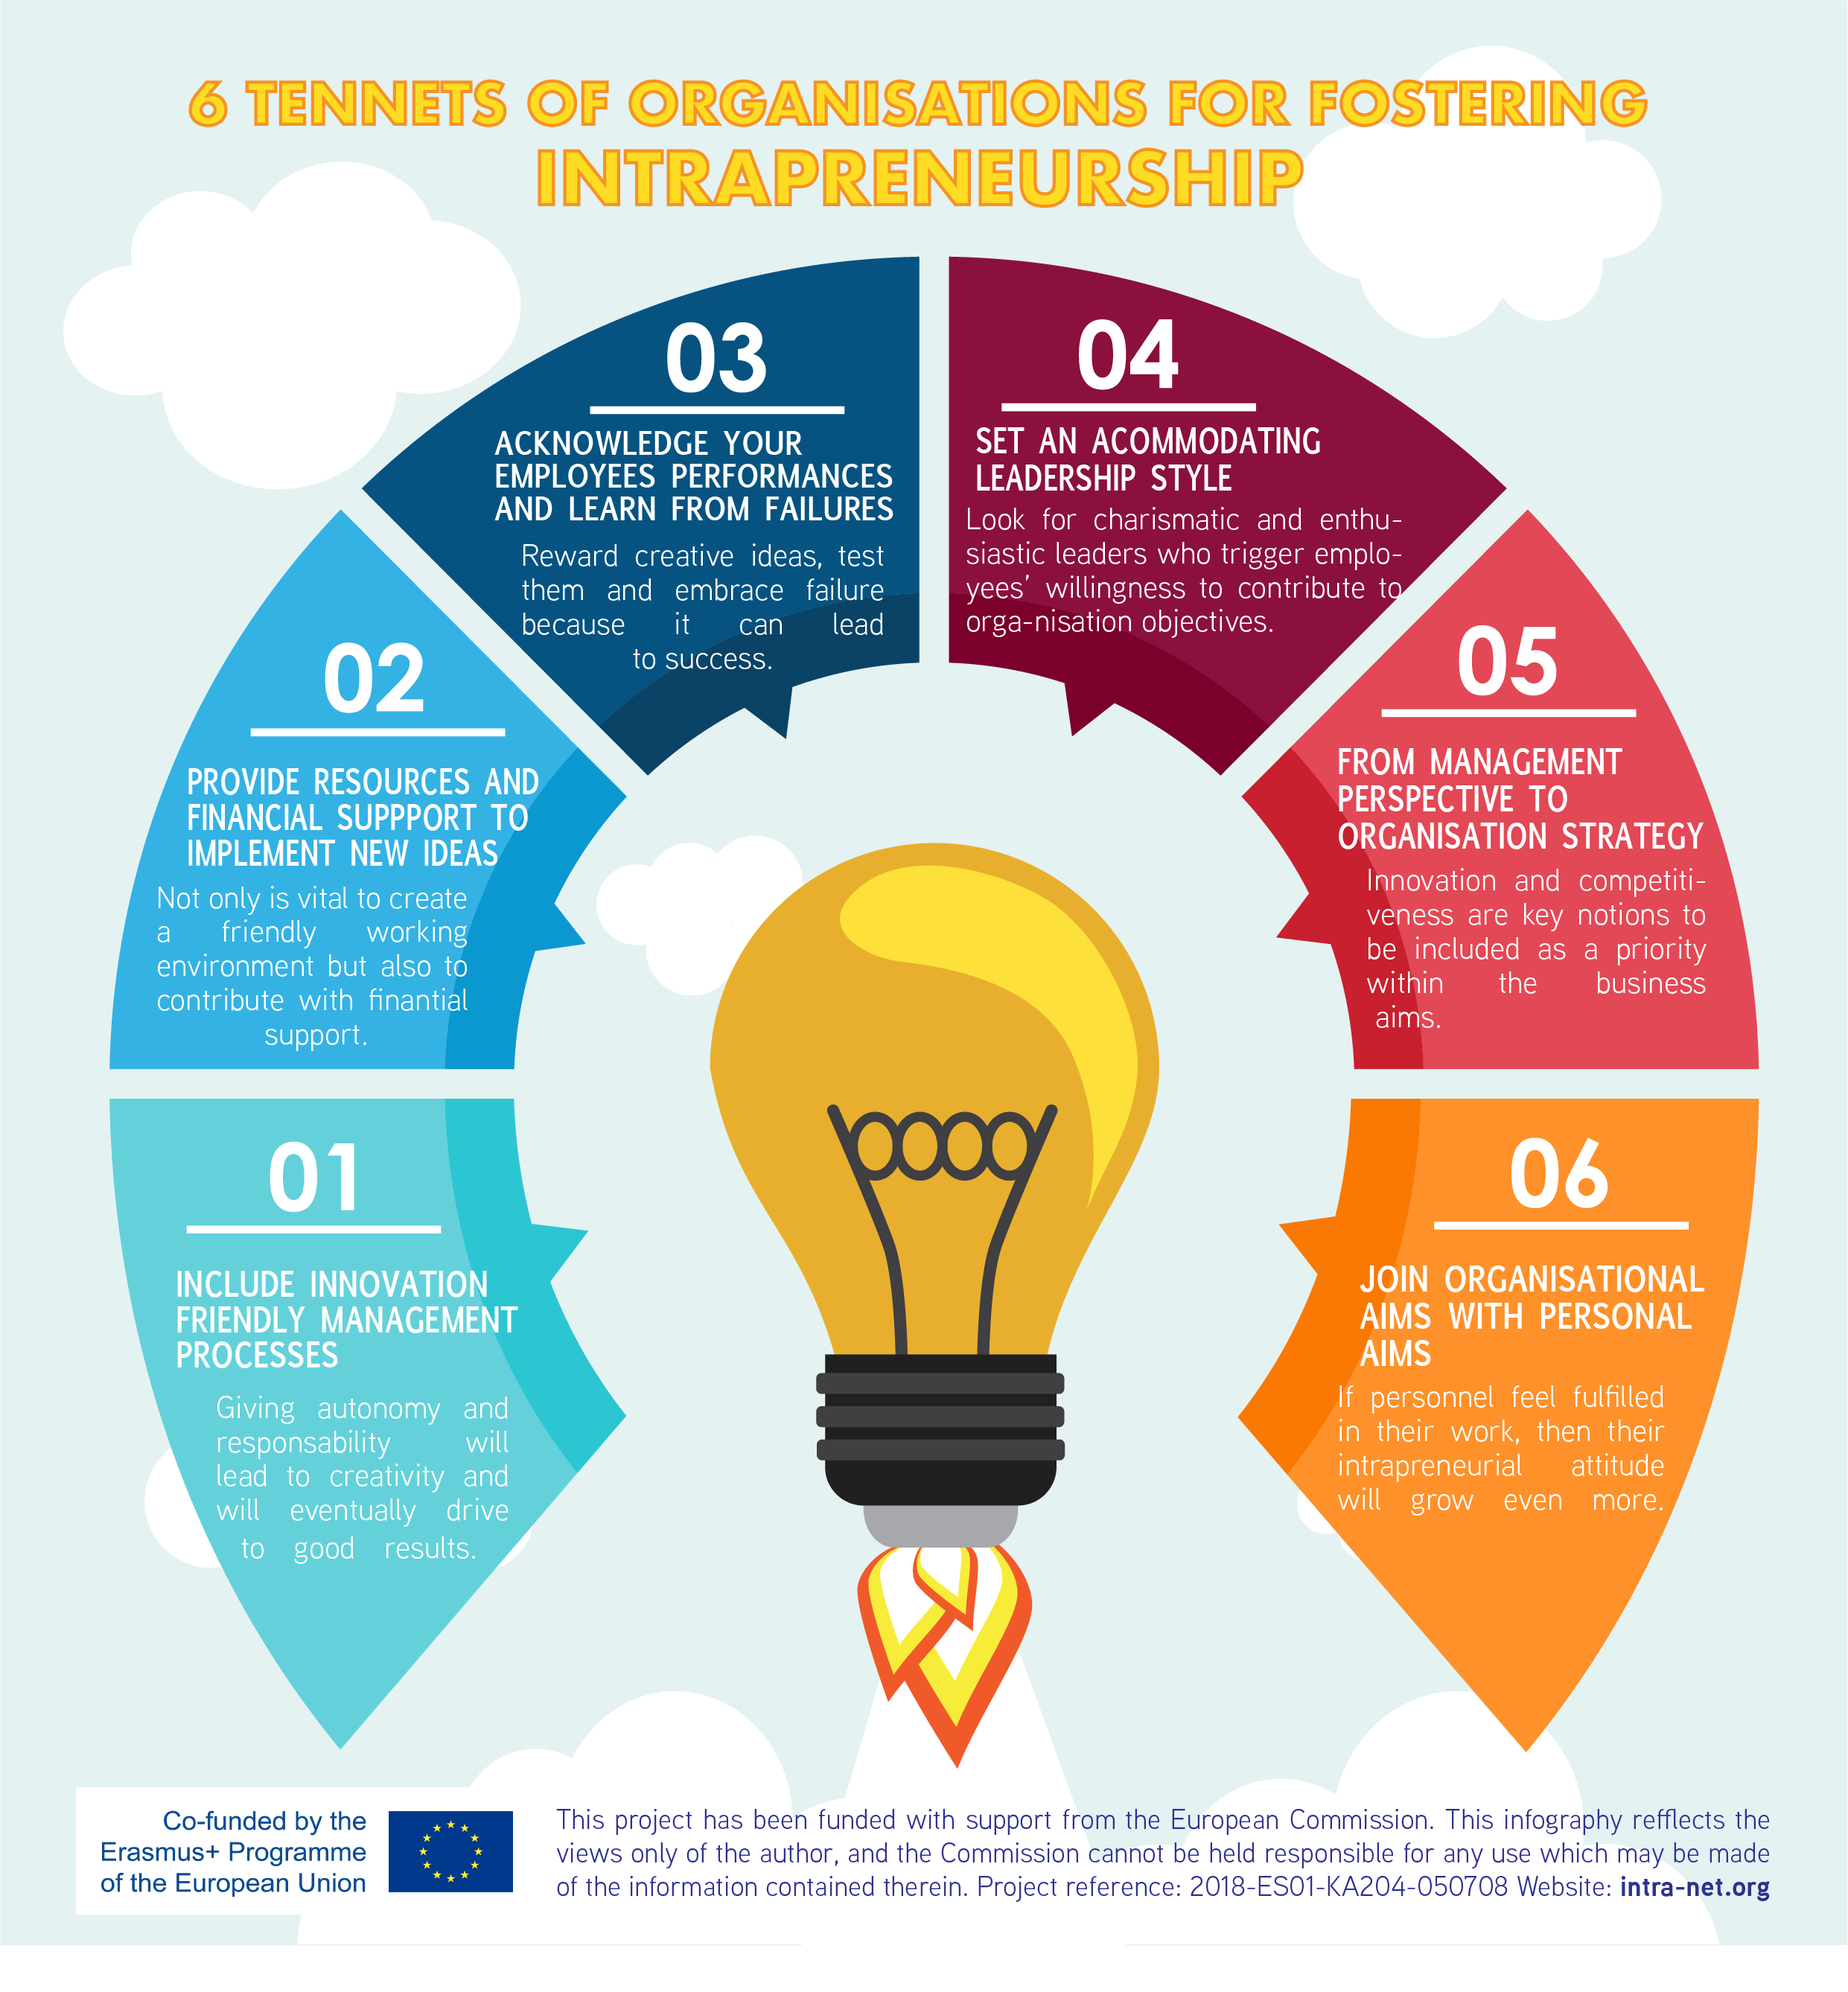 Intrapreneurship: 6 tennets to boost intrapreneurship in your enterprise